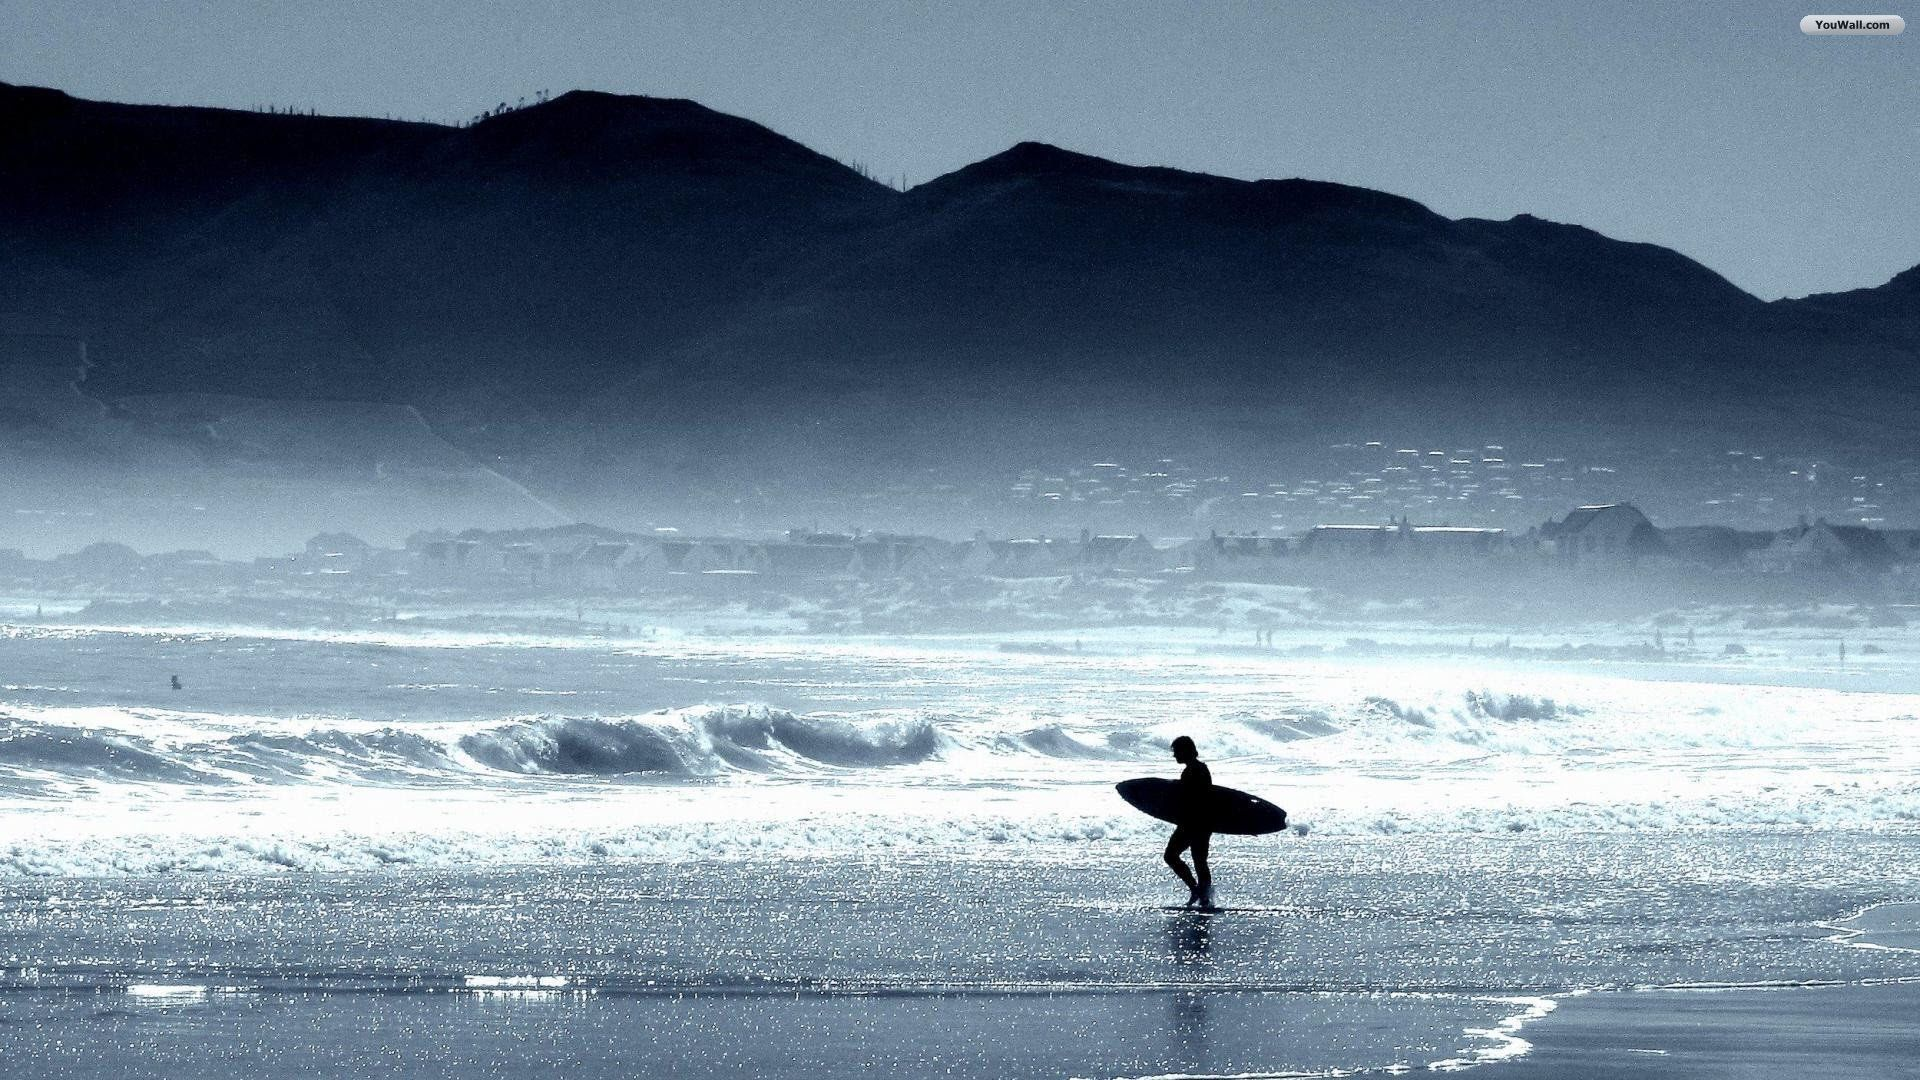 surfing wallpaper hd | hd wallpapers | pinterest | wallpaper